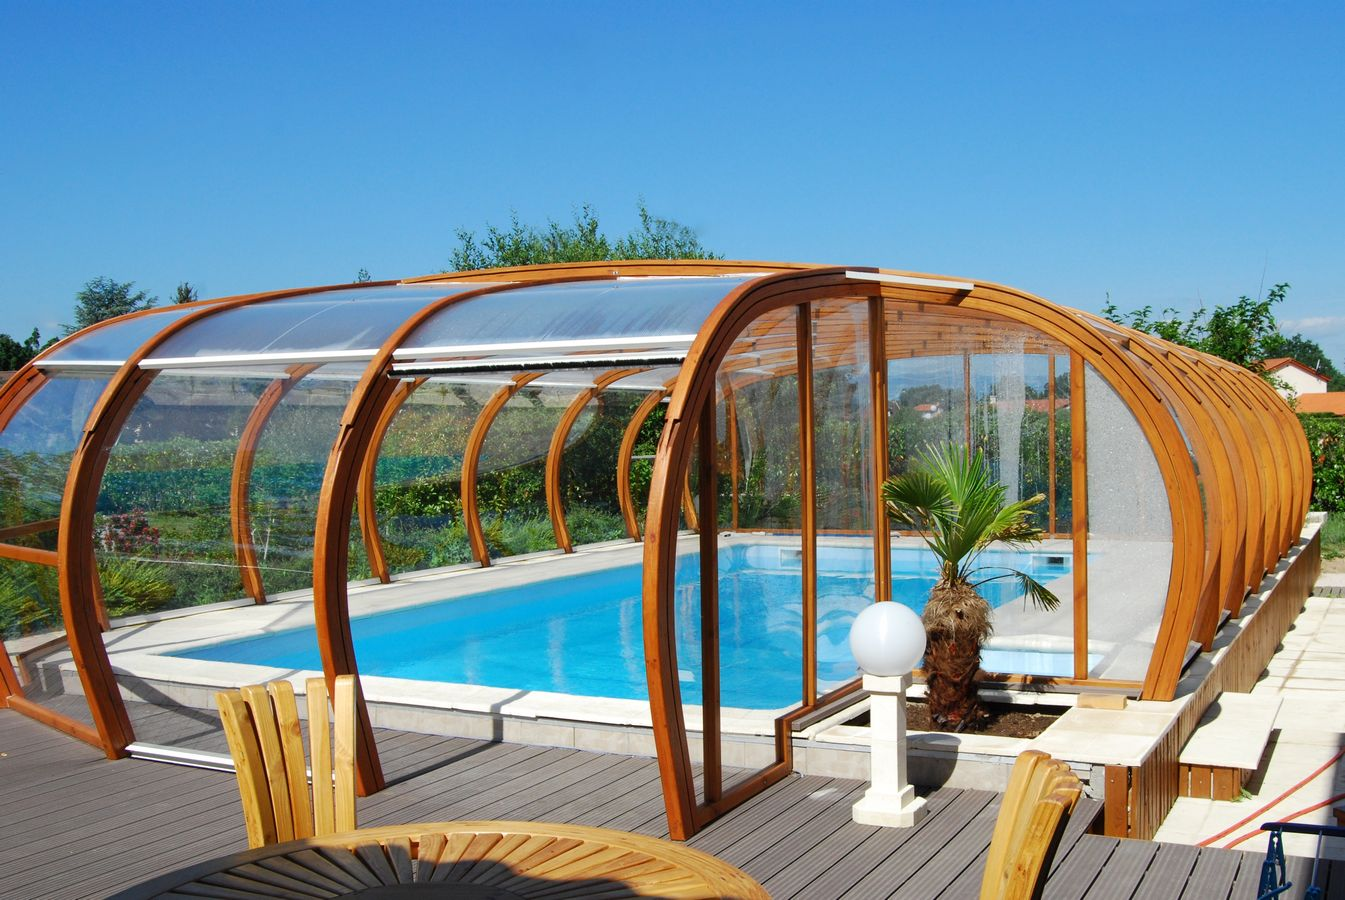 Swimming pool enclosure ecocurves - Swimming pool enclosures ...